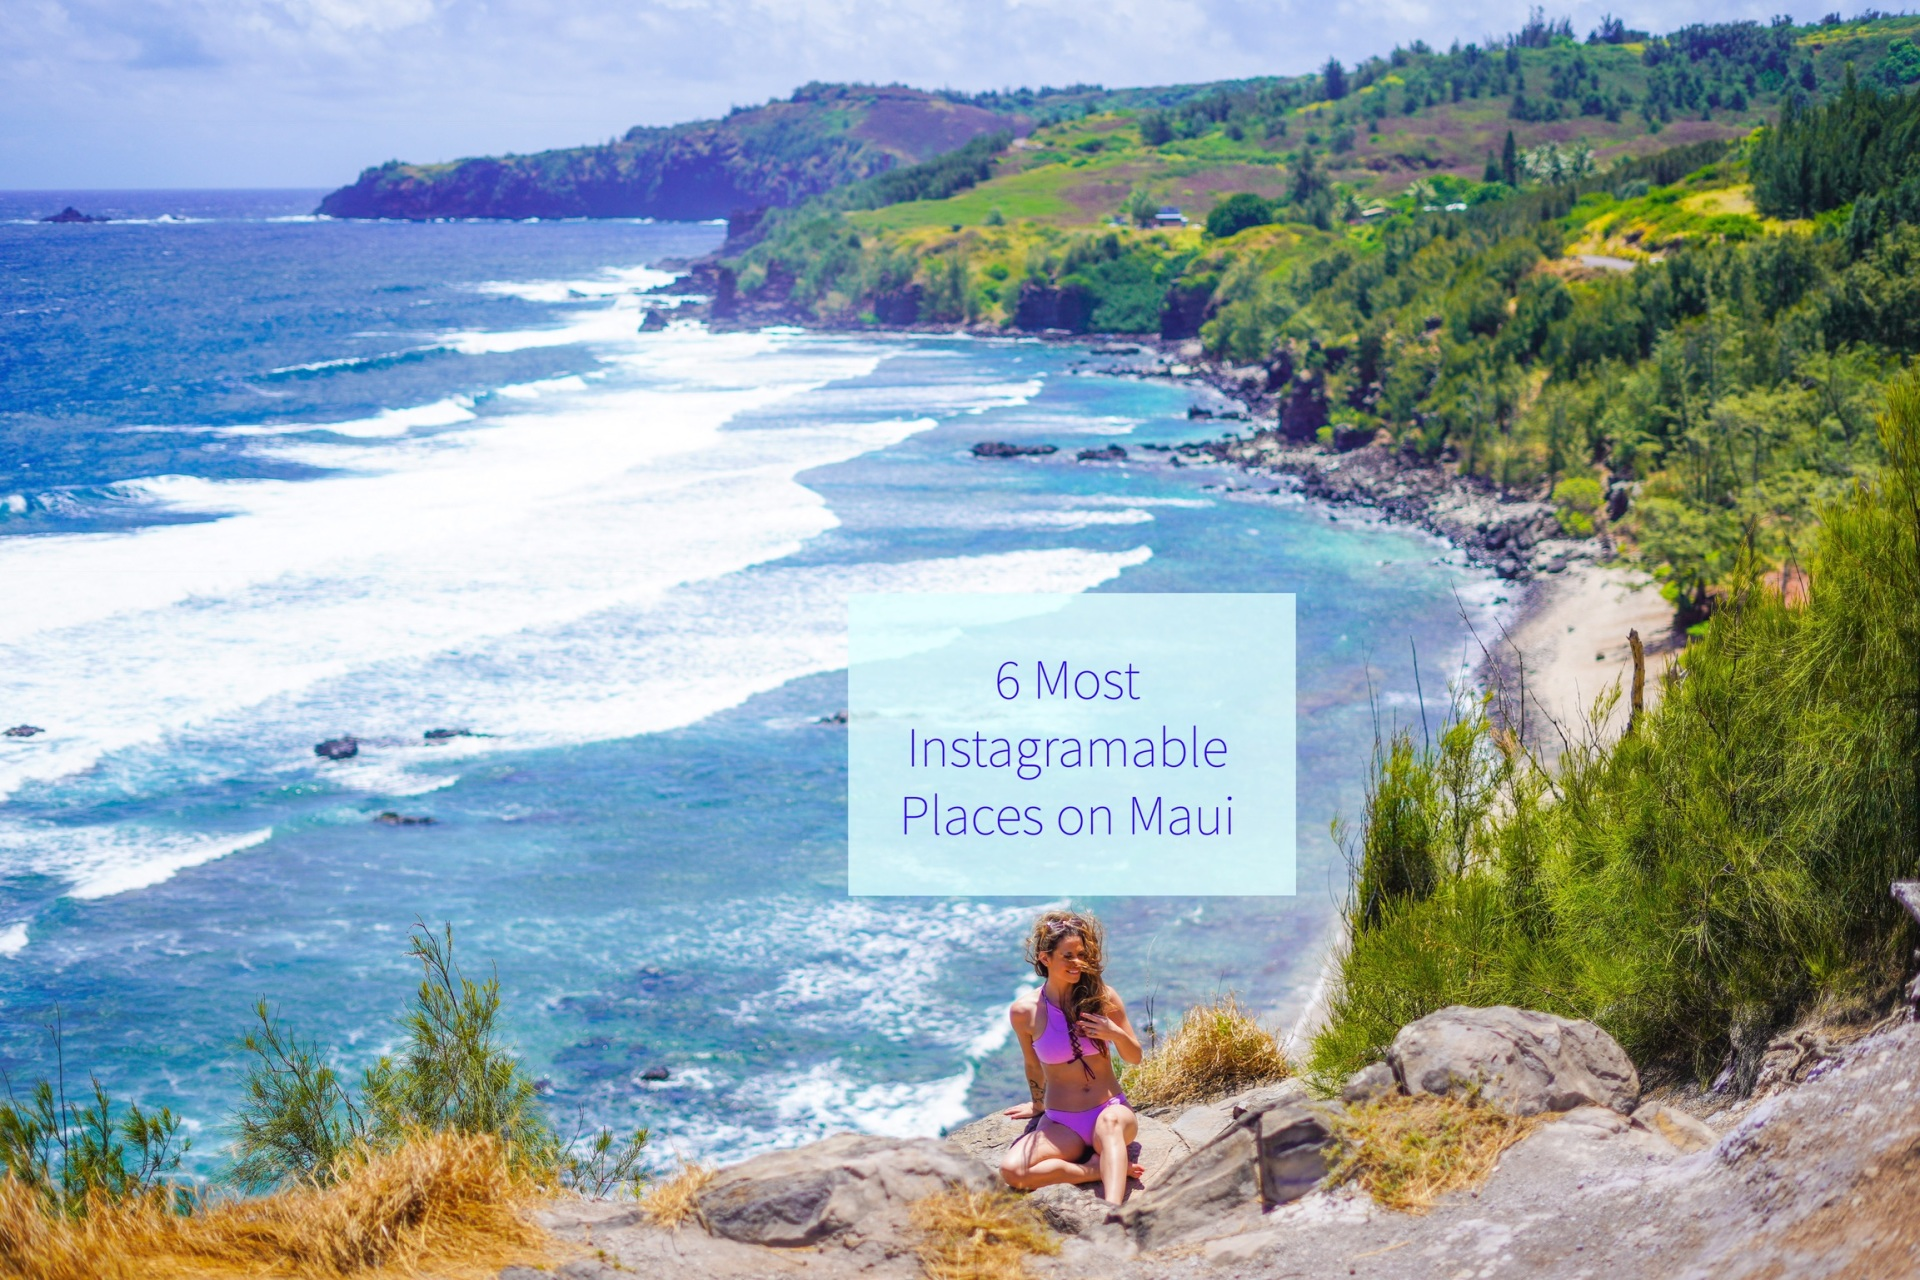 6 Most Instagramable Places on Maui